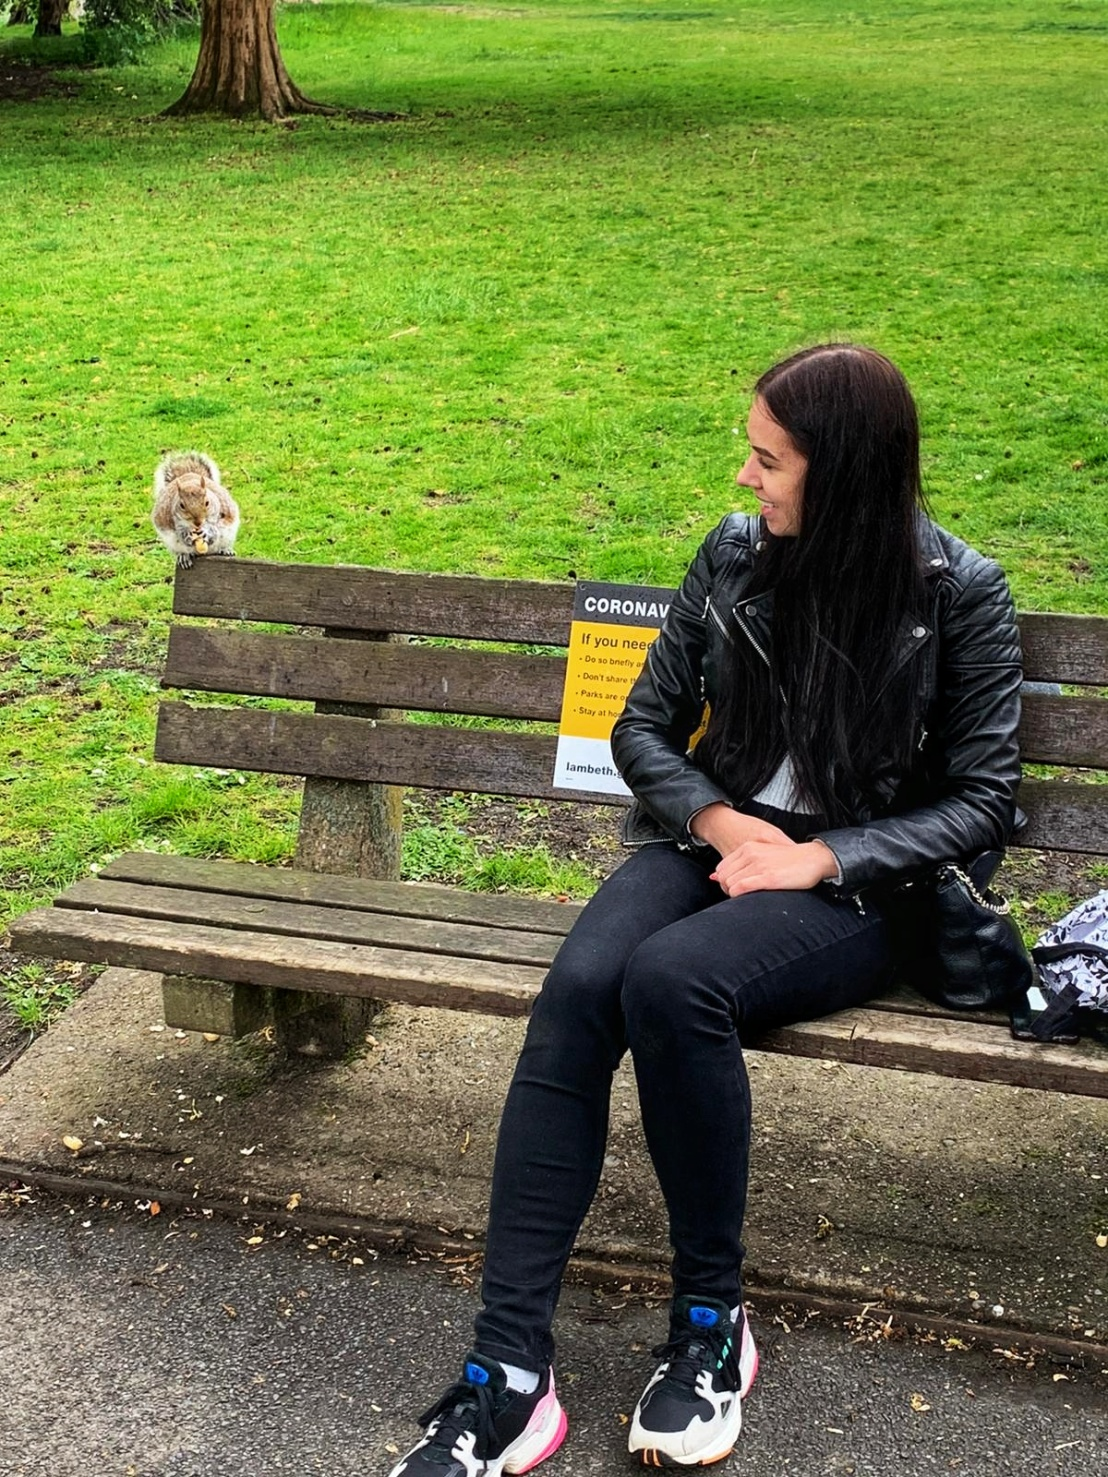 A red squirrel on a bench next to a woman - Ruskin Park, London